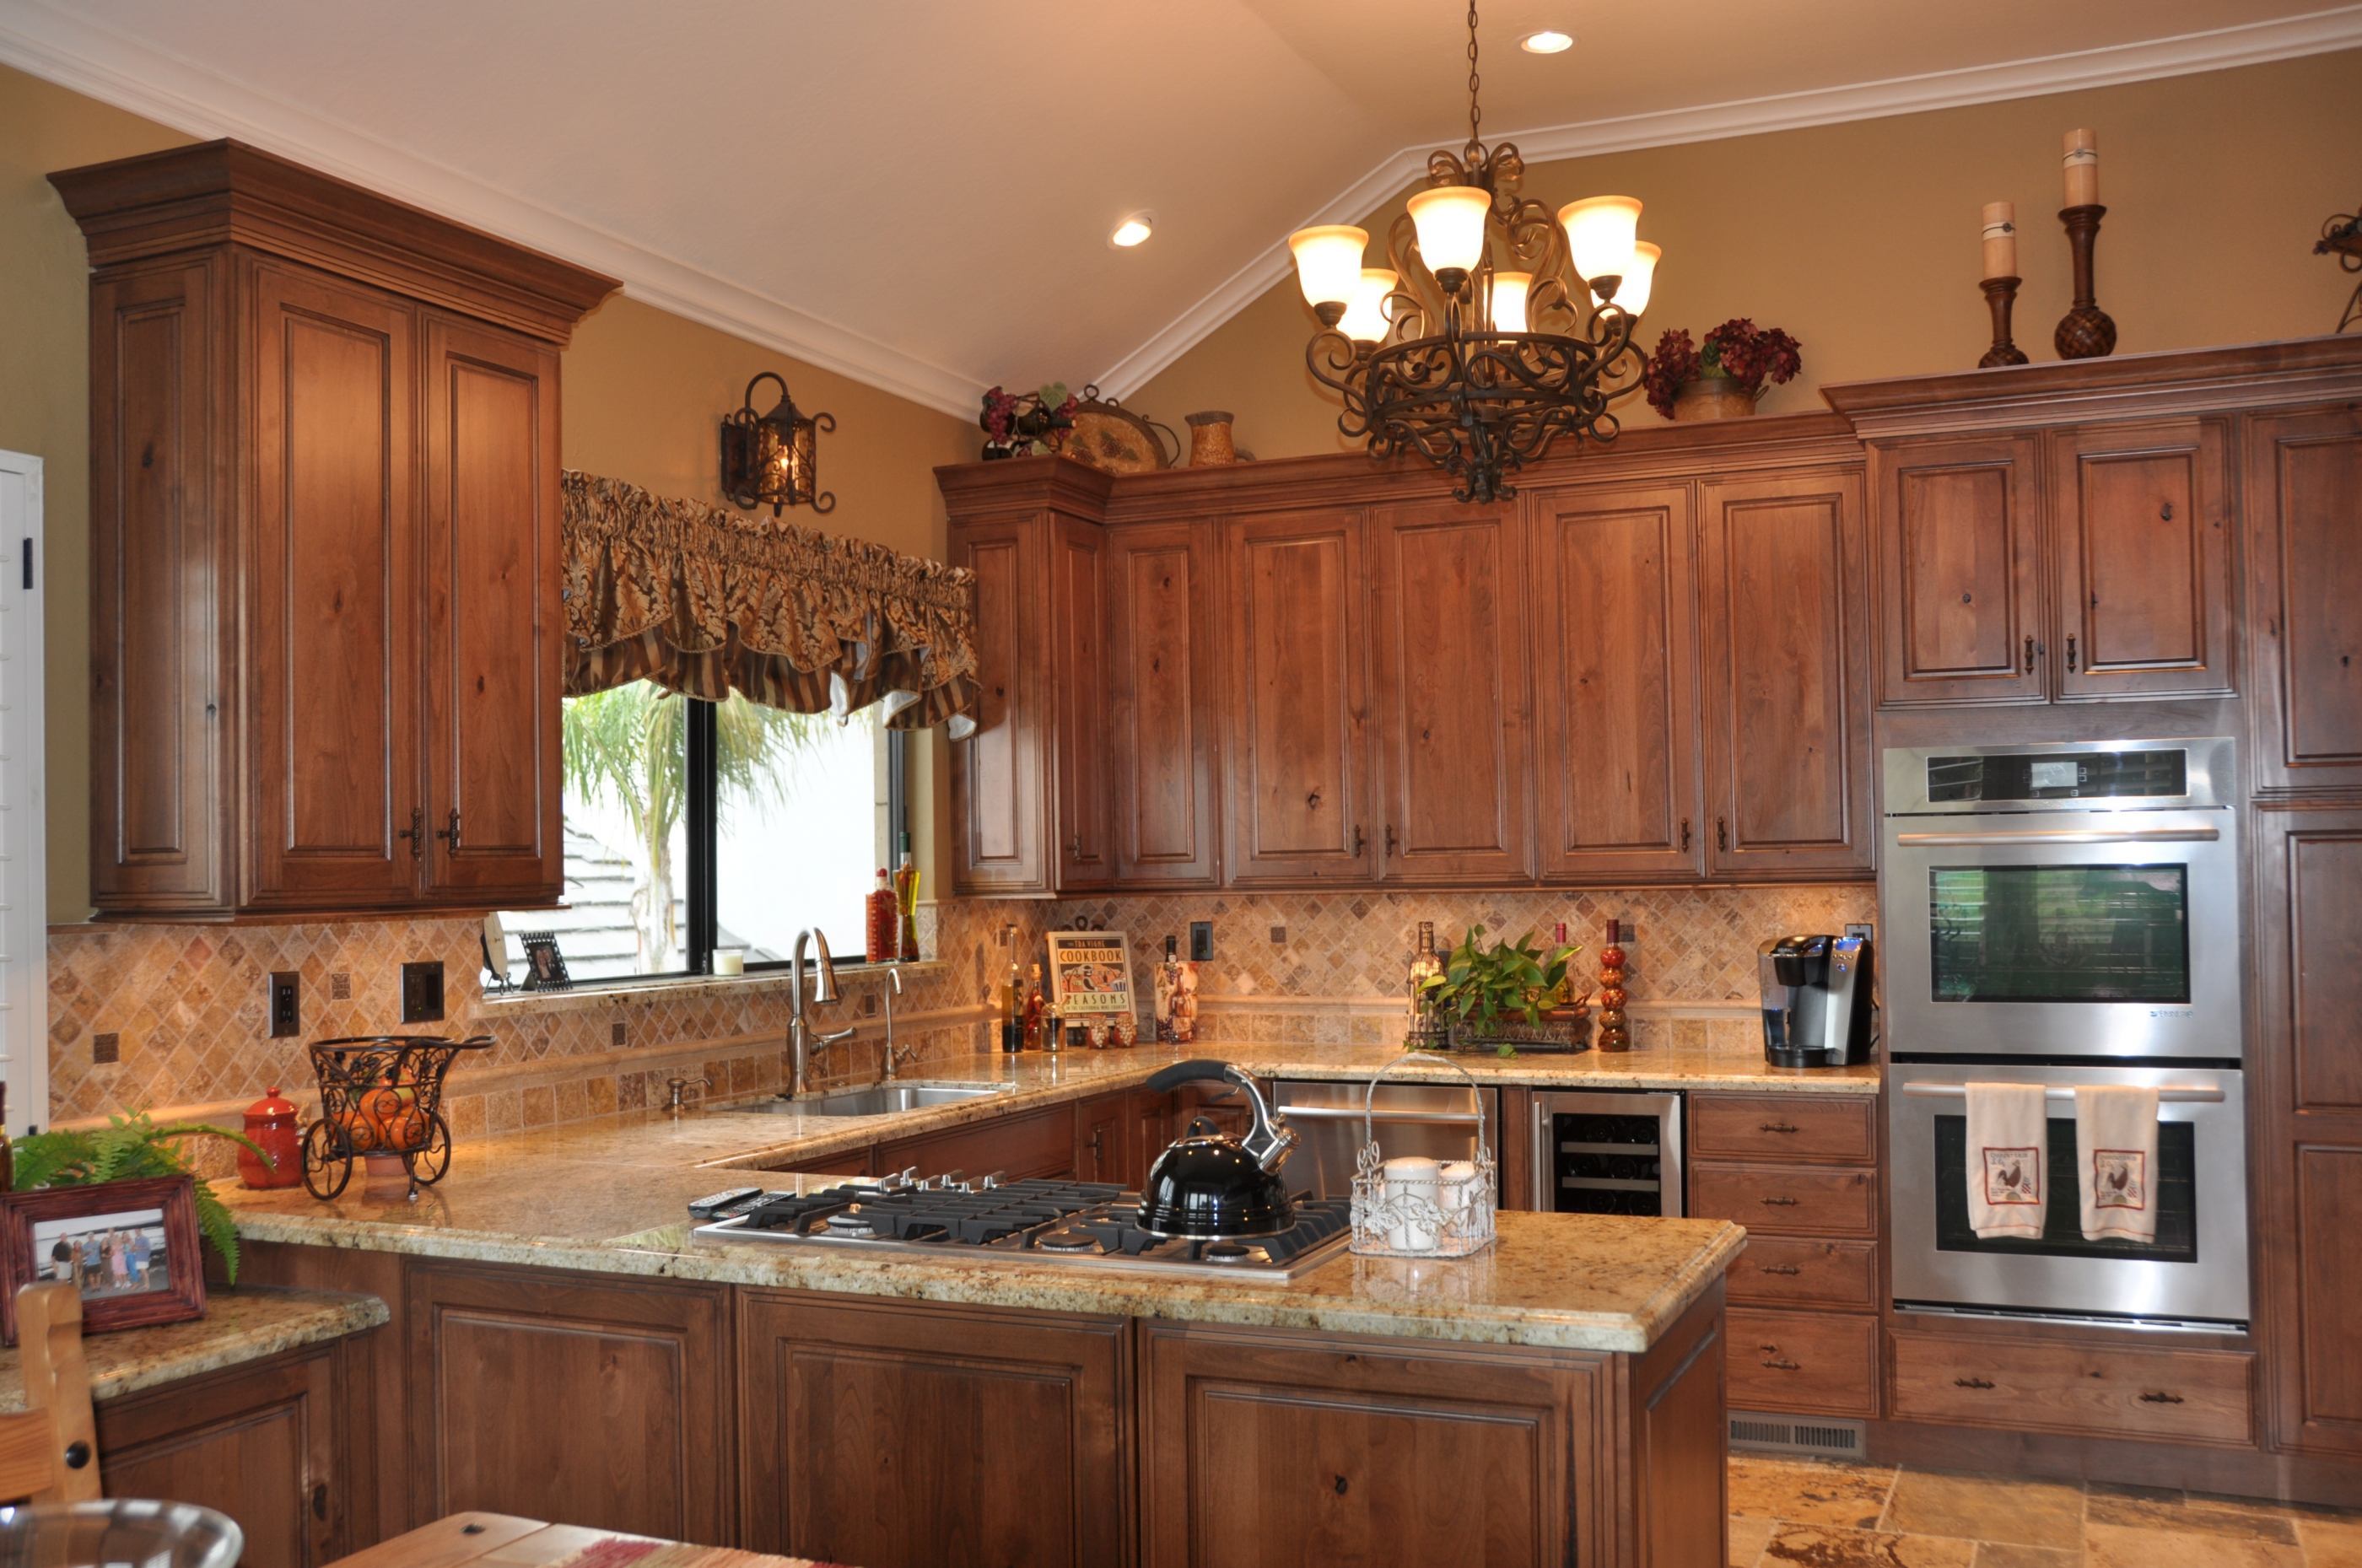 Country Kitchen Designs Photo Gallery Diablo Valley Cabinetry Photo Gallery